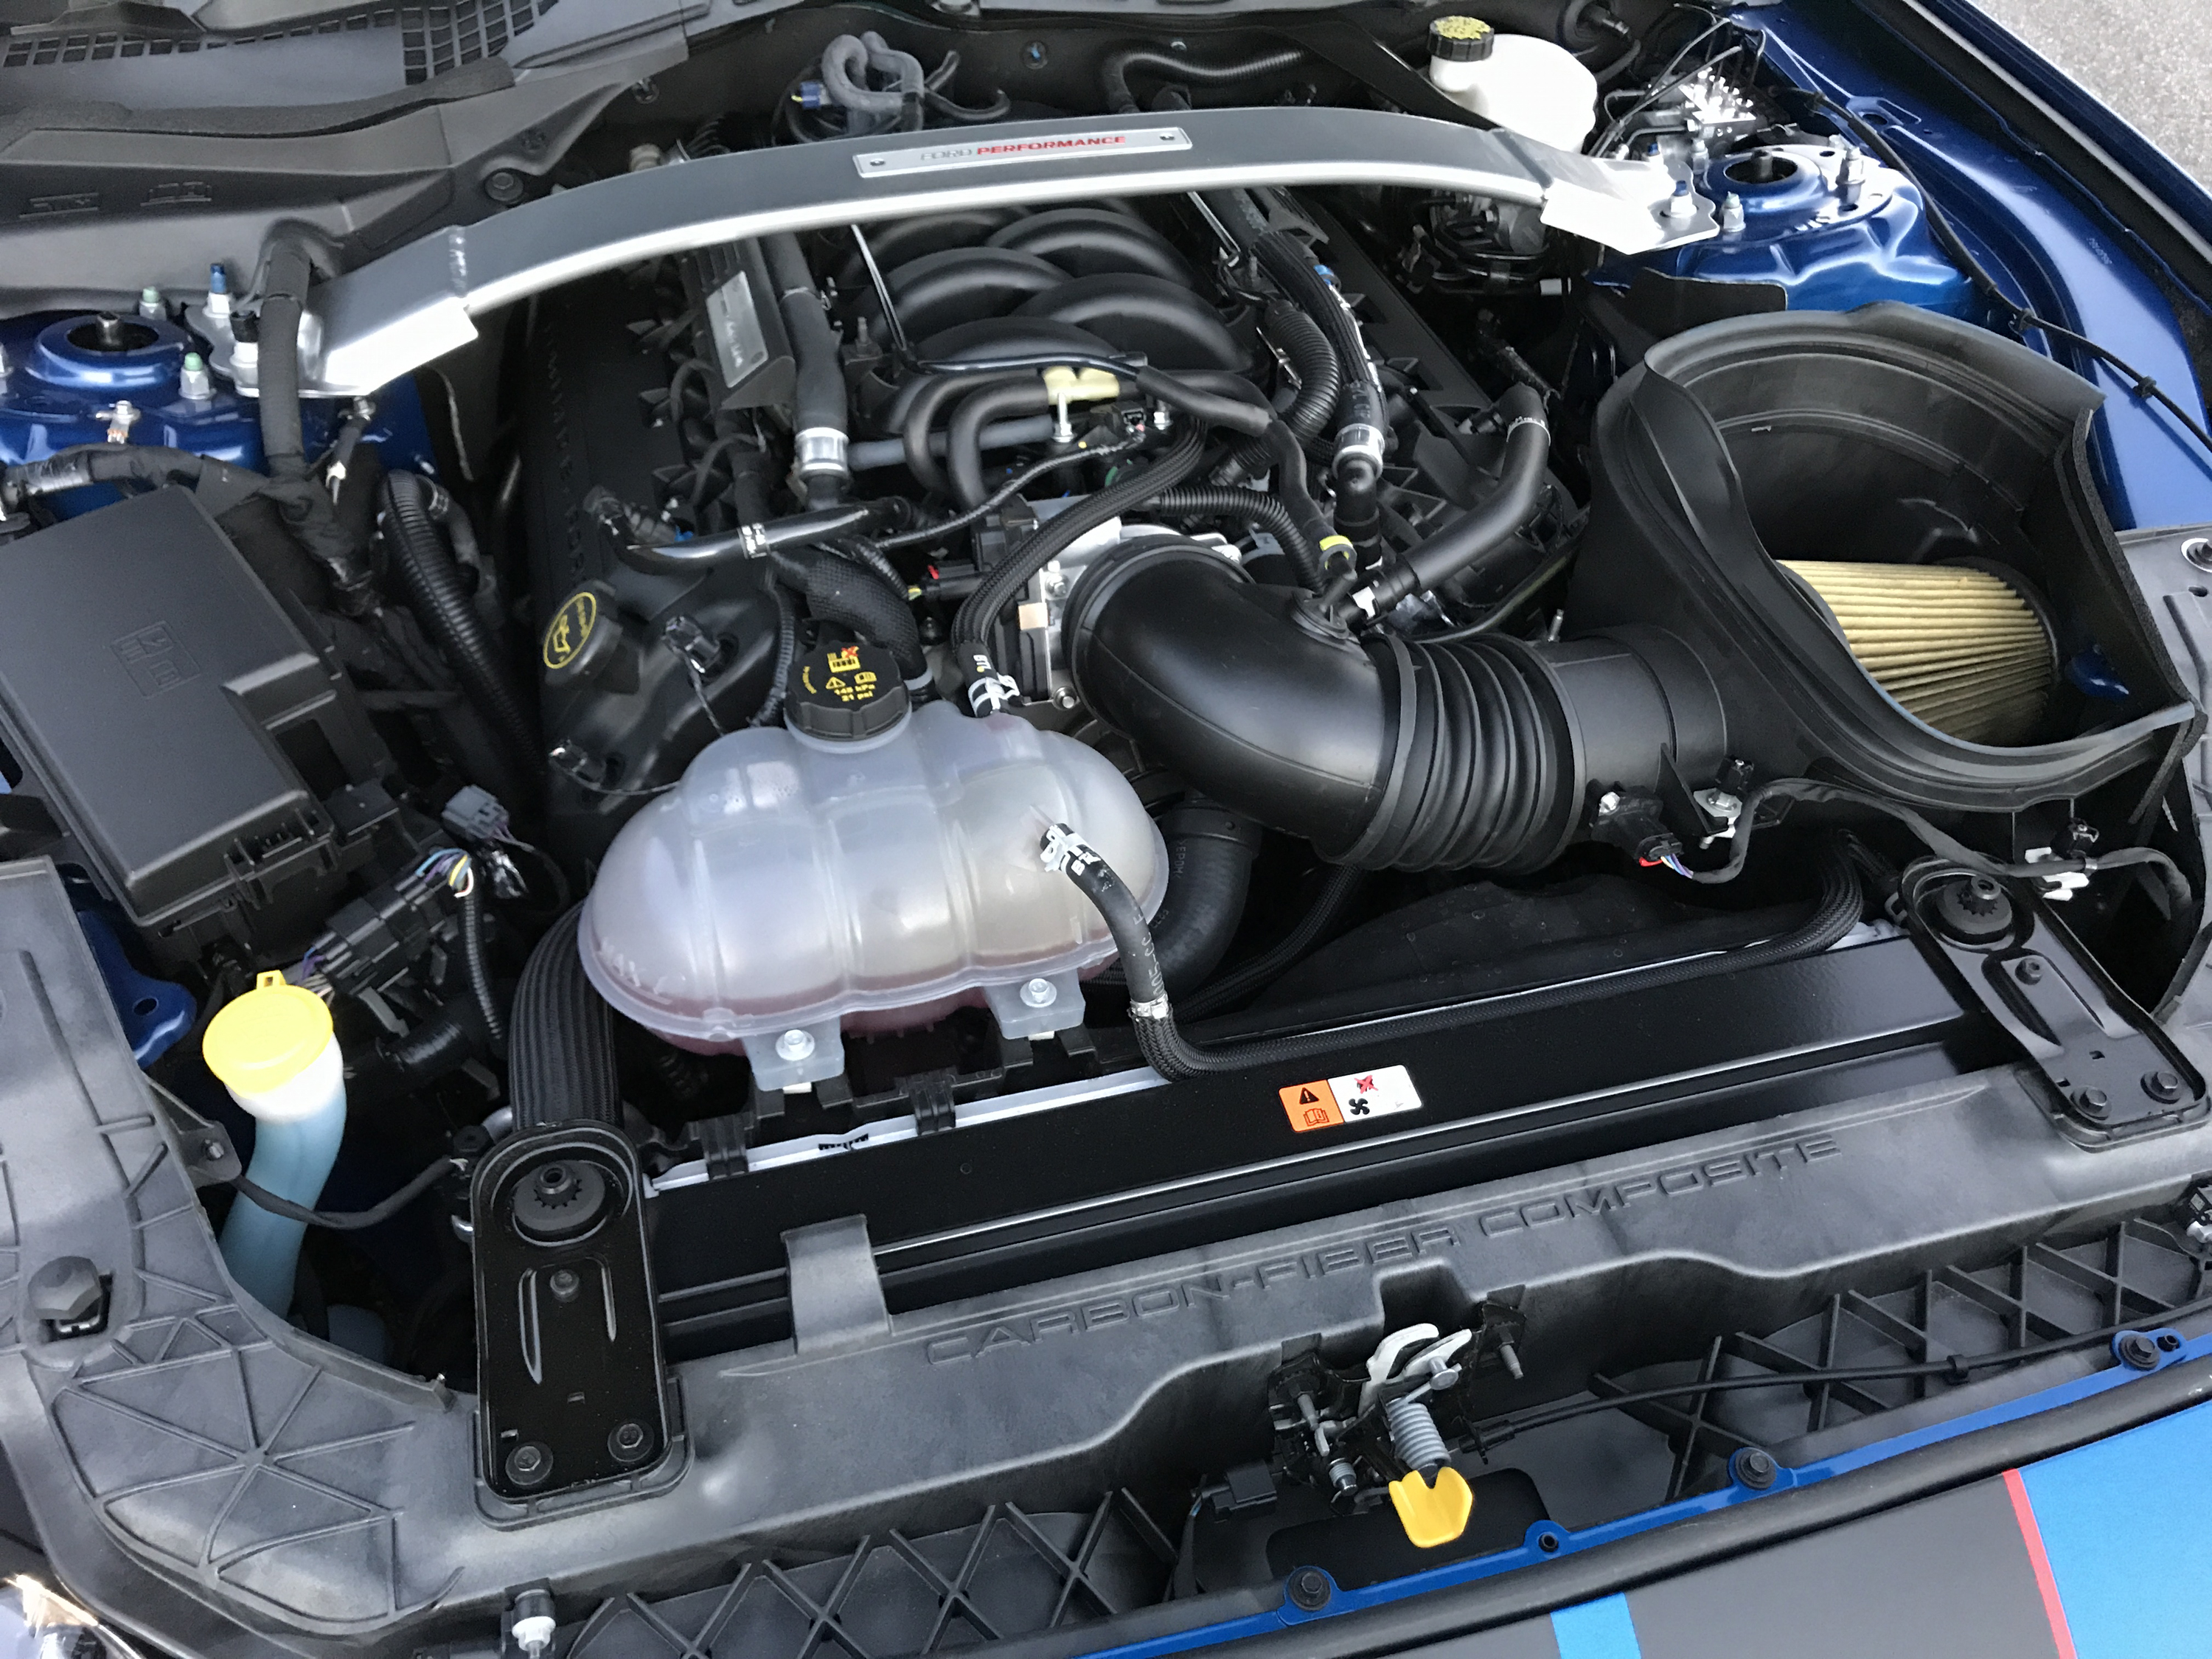 2017 Ford Mustang Shelby GT350R Engine